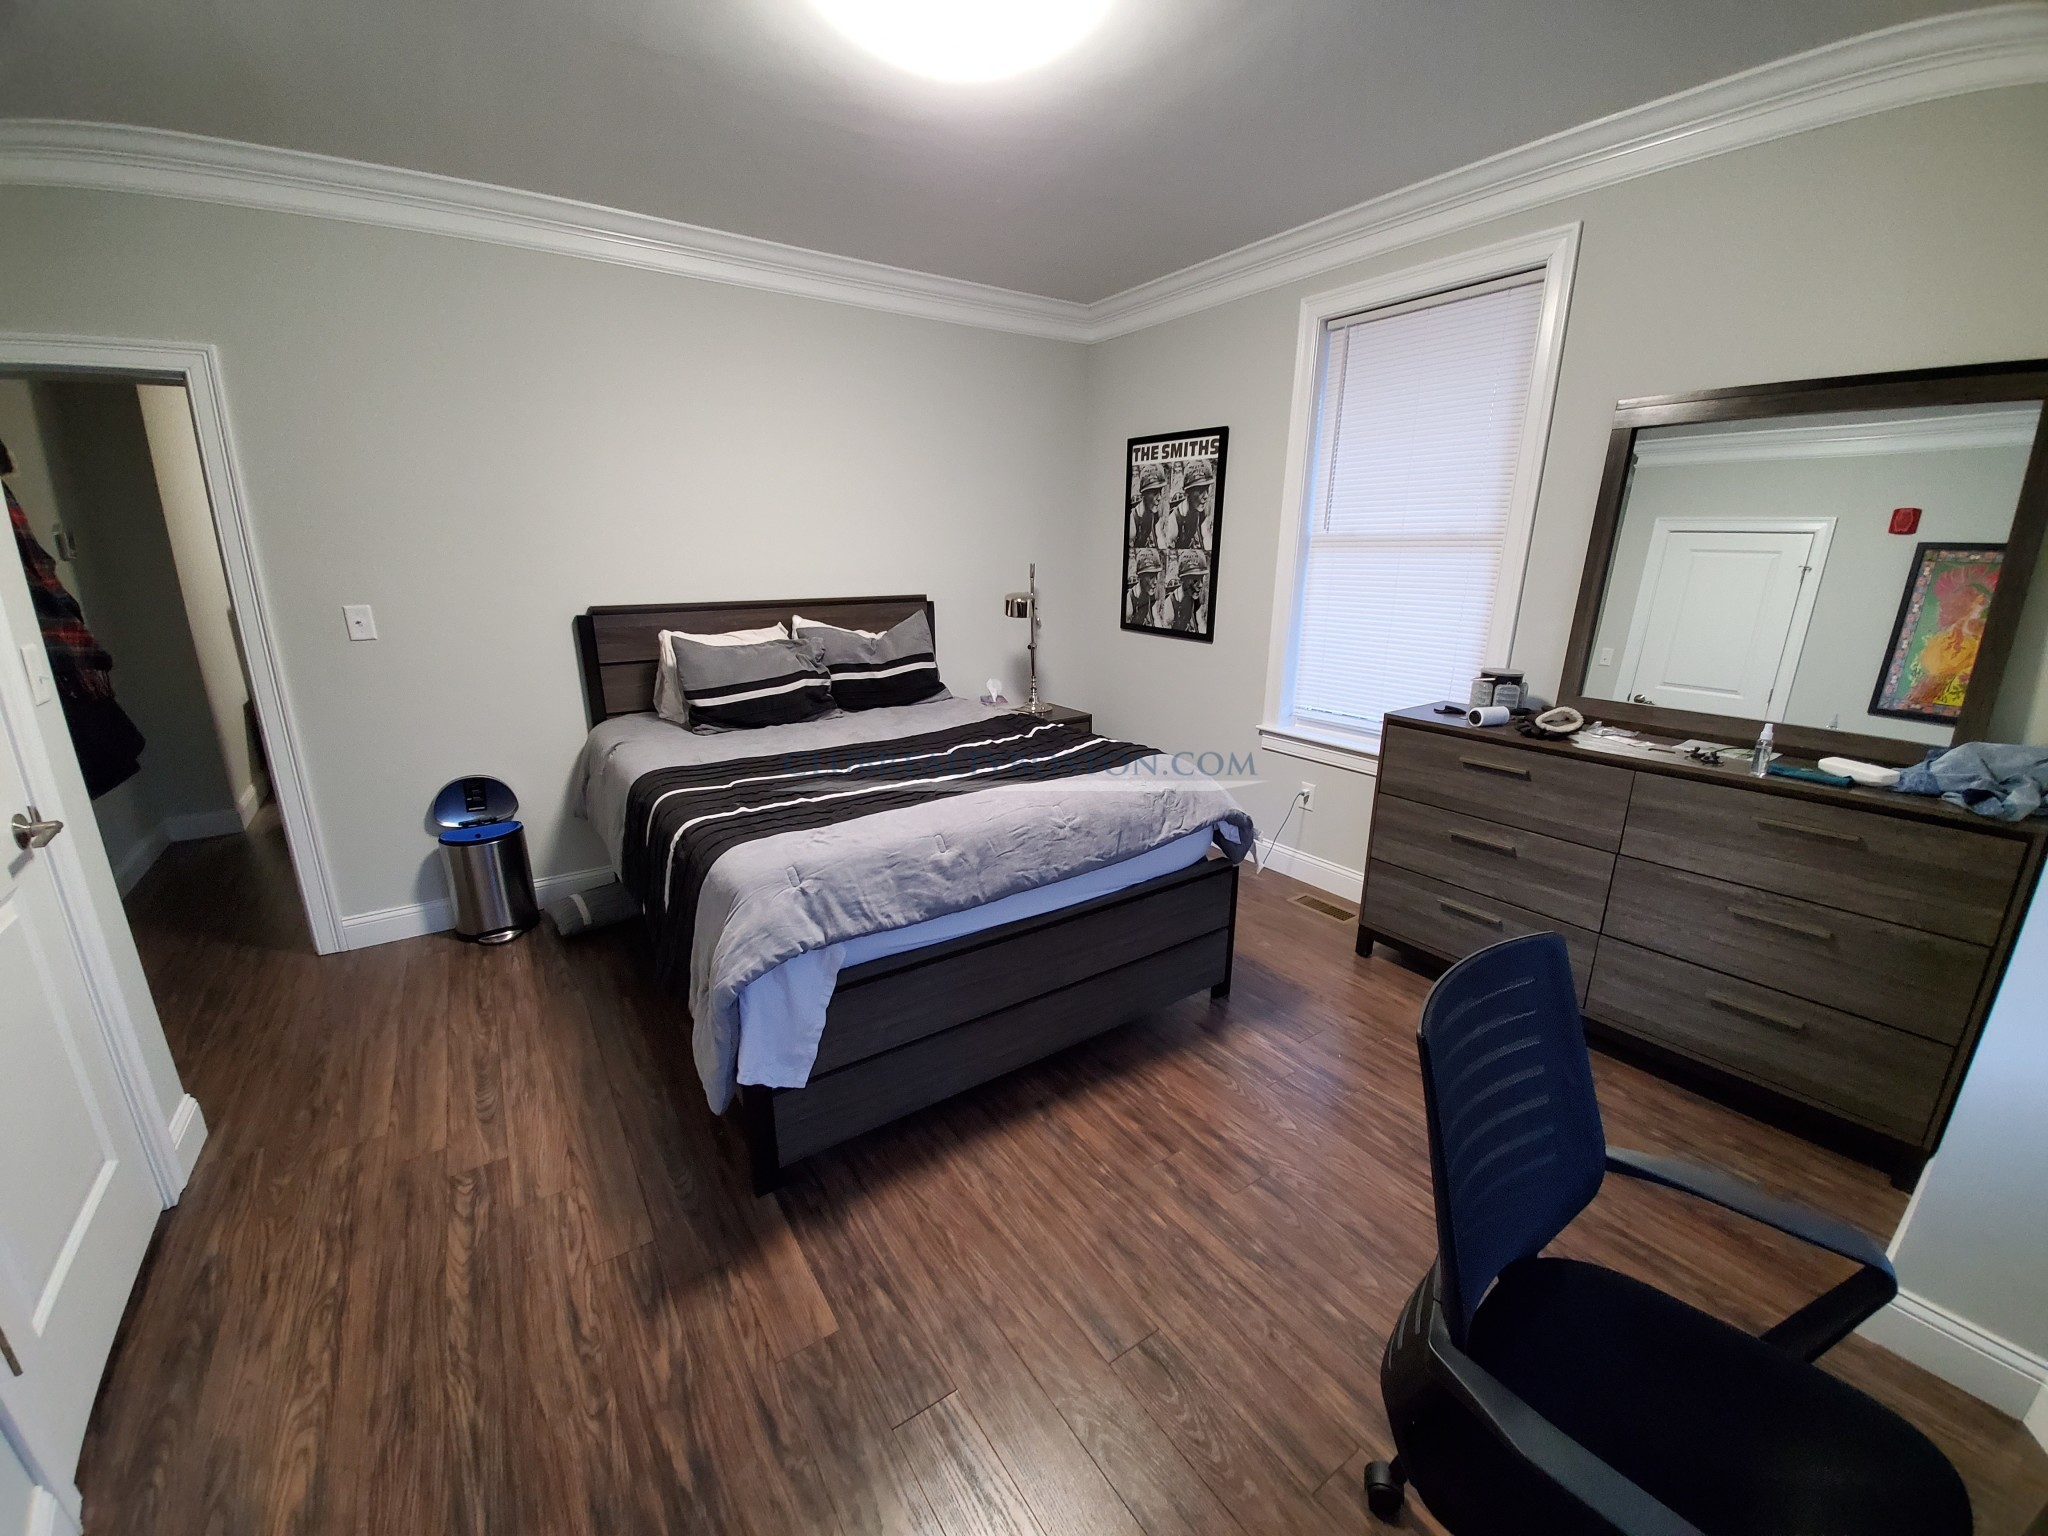 1 Bed, 1 Bath apartment in Waltham for $1,850